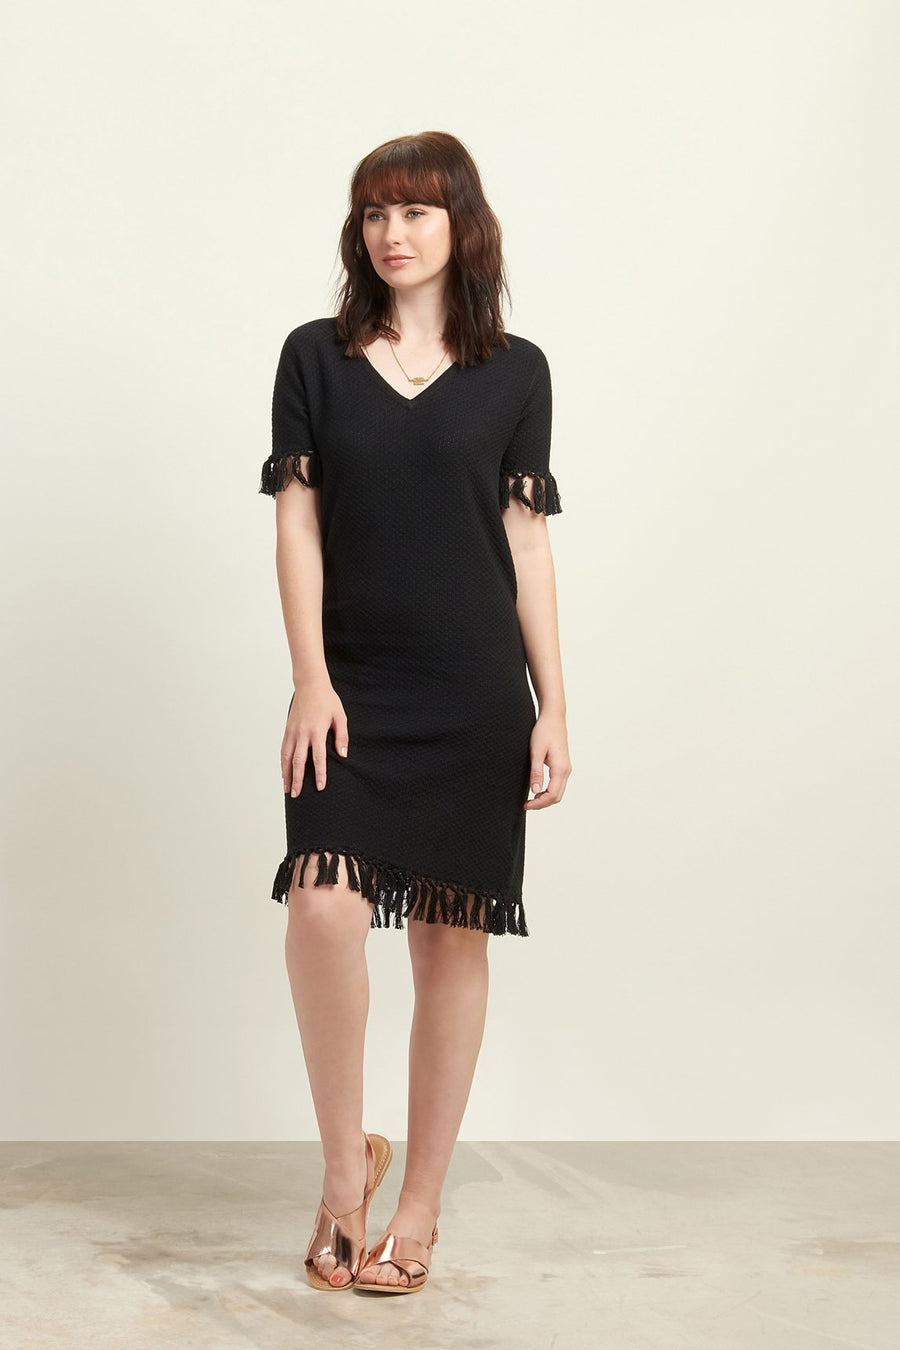 Souk Black Dress - Organic Cotton - Issara Fairtrade